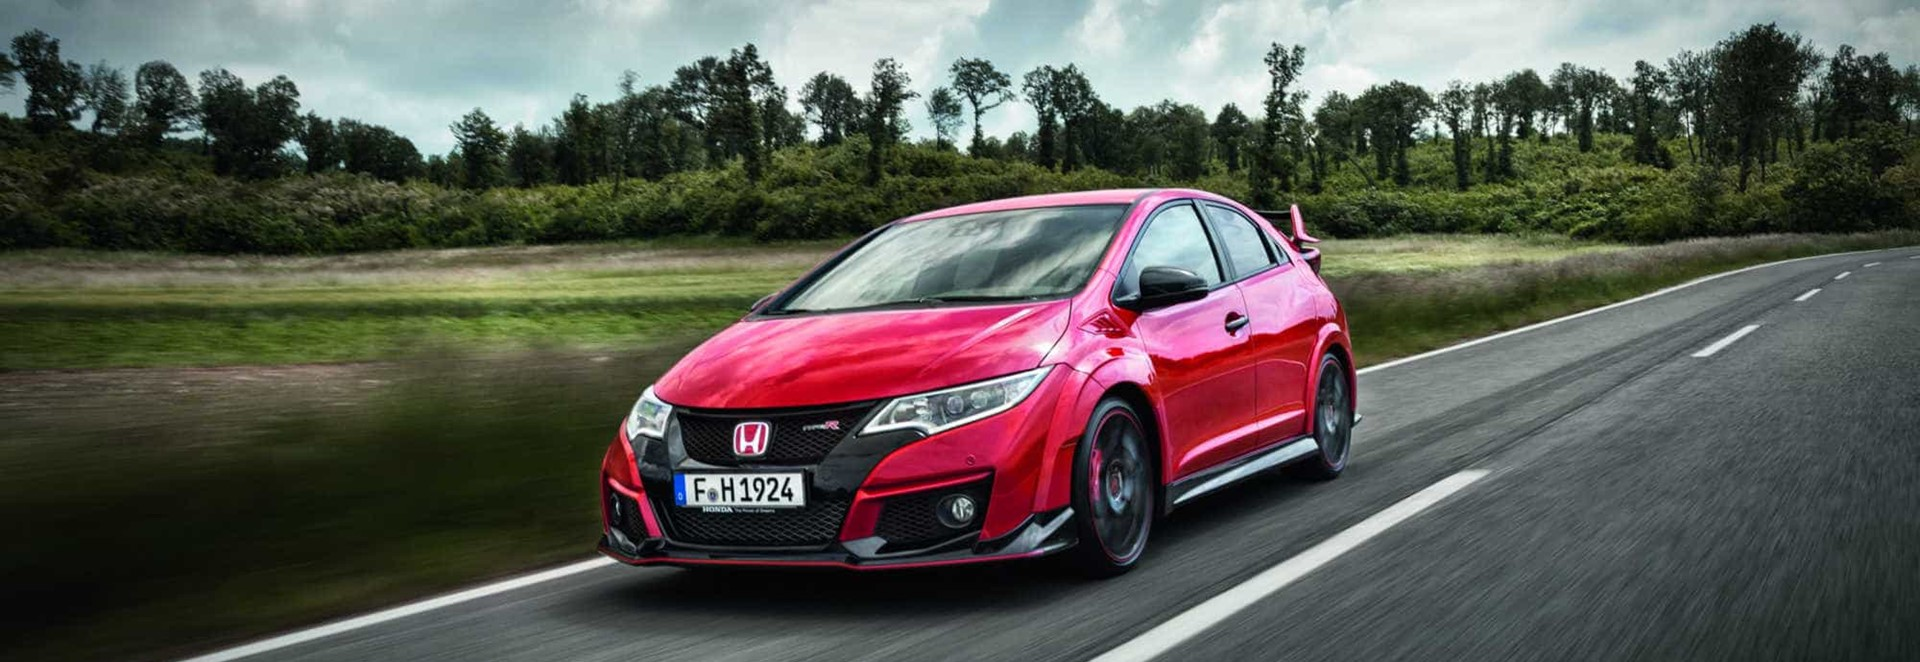 honda civic type r hatchback review car keys. Black Bedroom Furniture Sets. Home Design Ideas